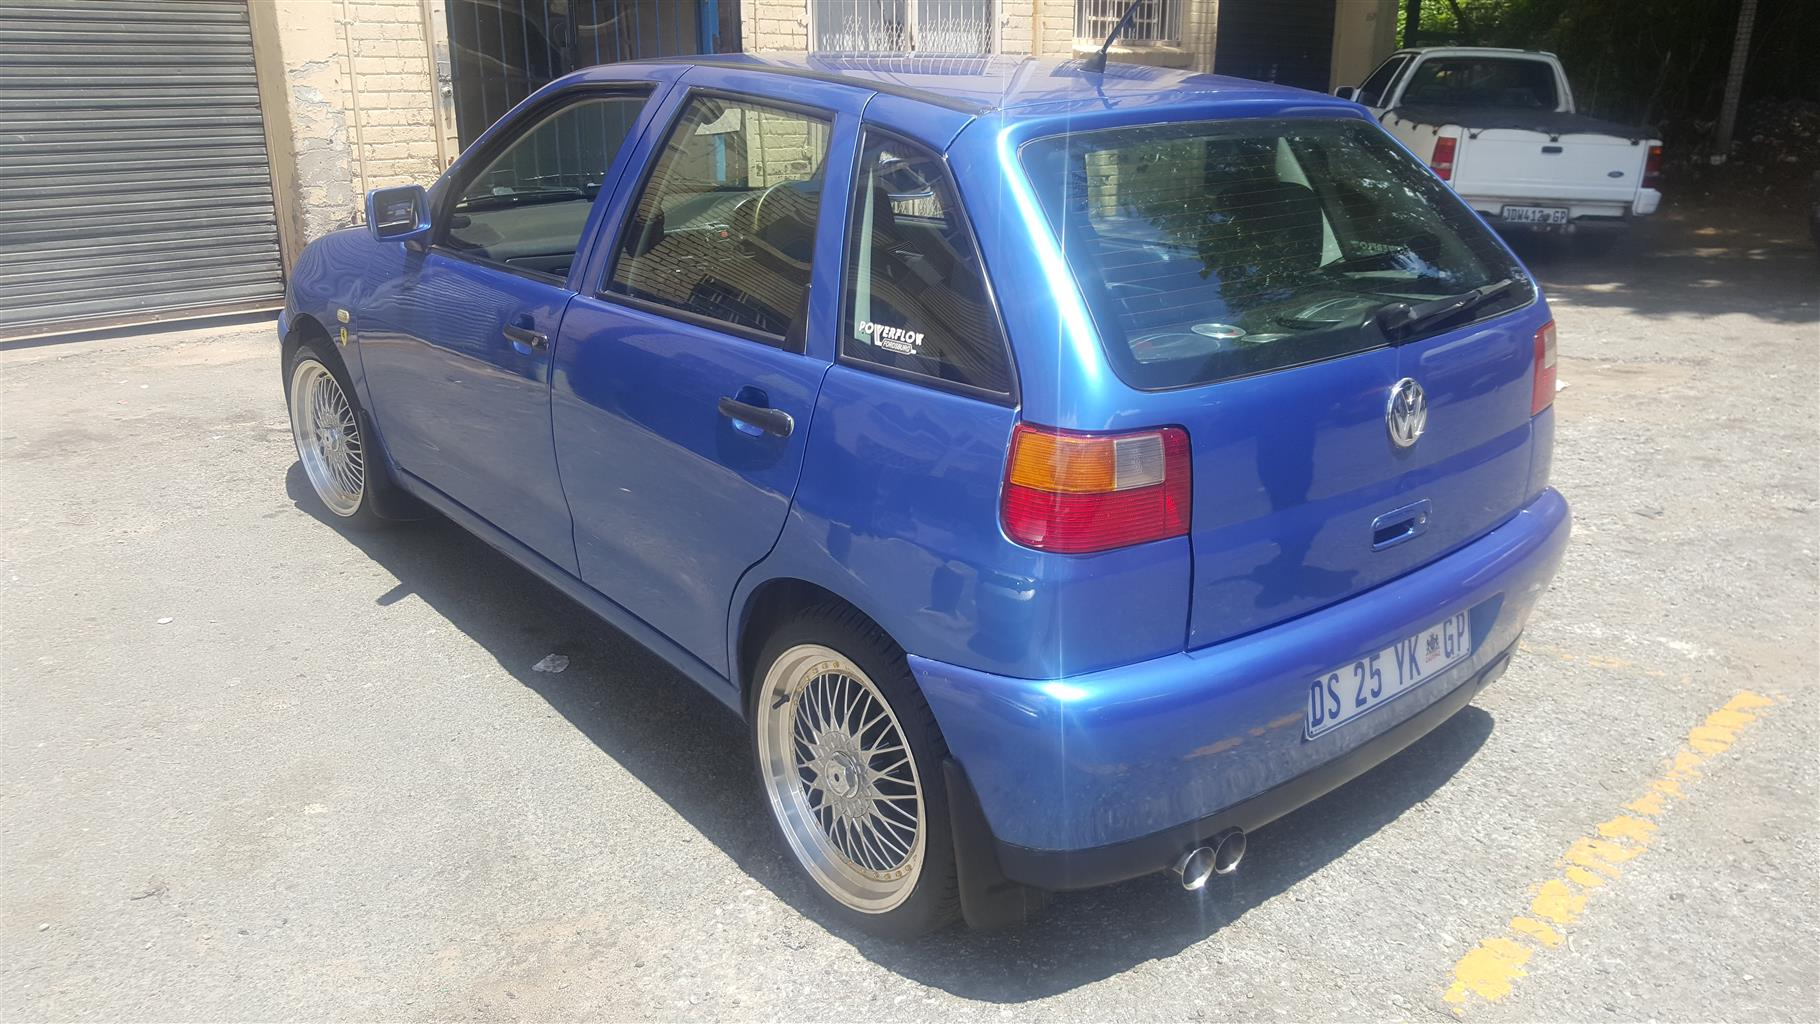 Polo Playa For Sale In Durban Gumtree - Ortsplanungsrevision